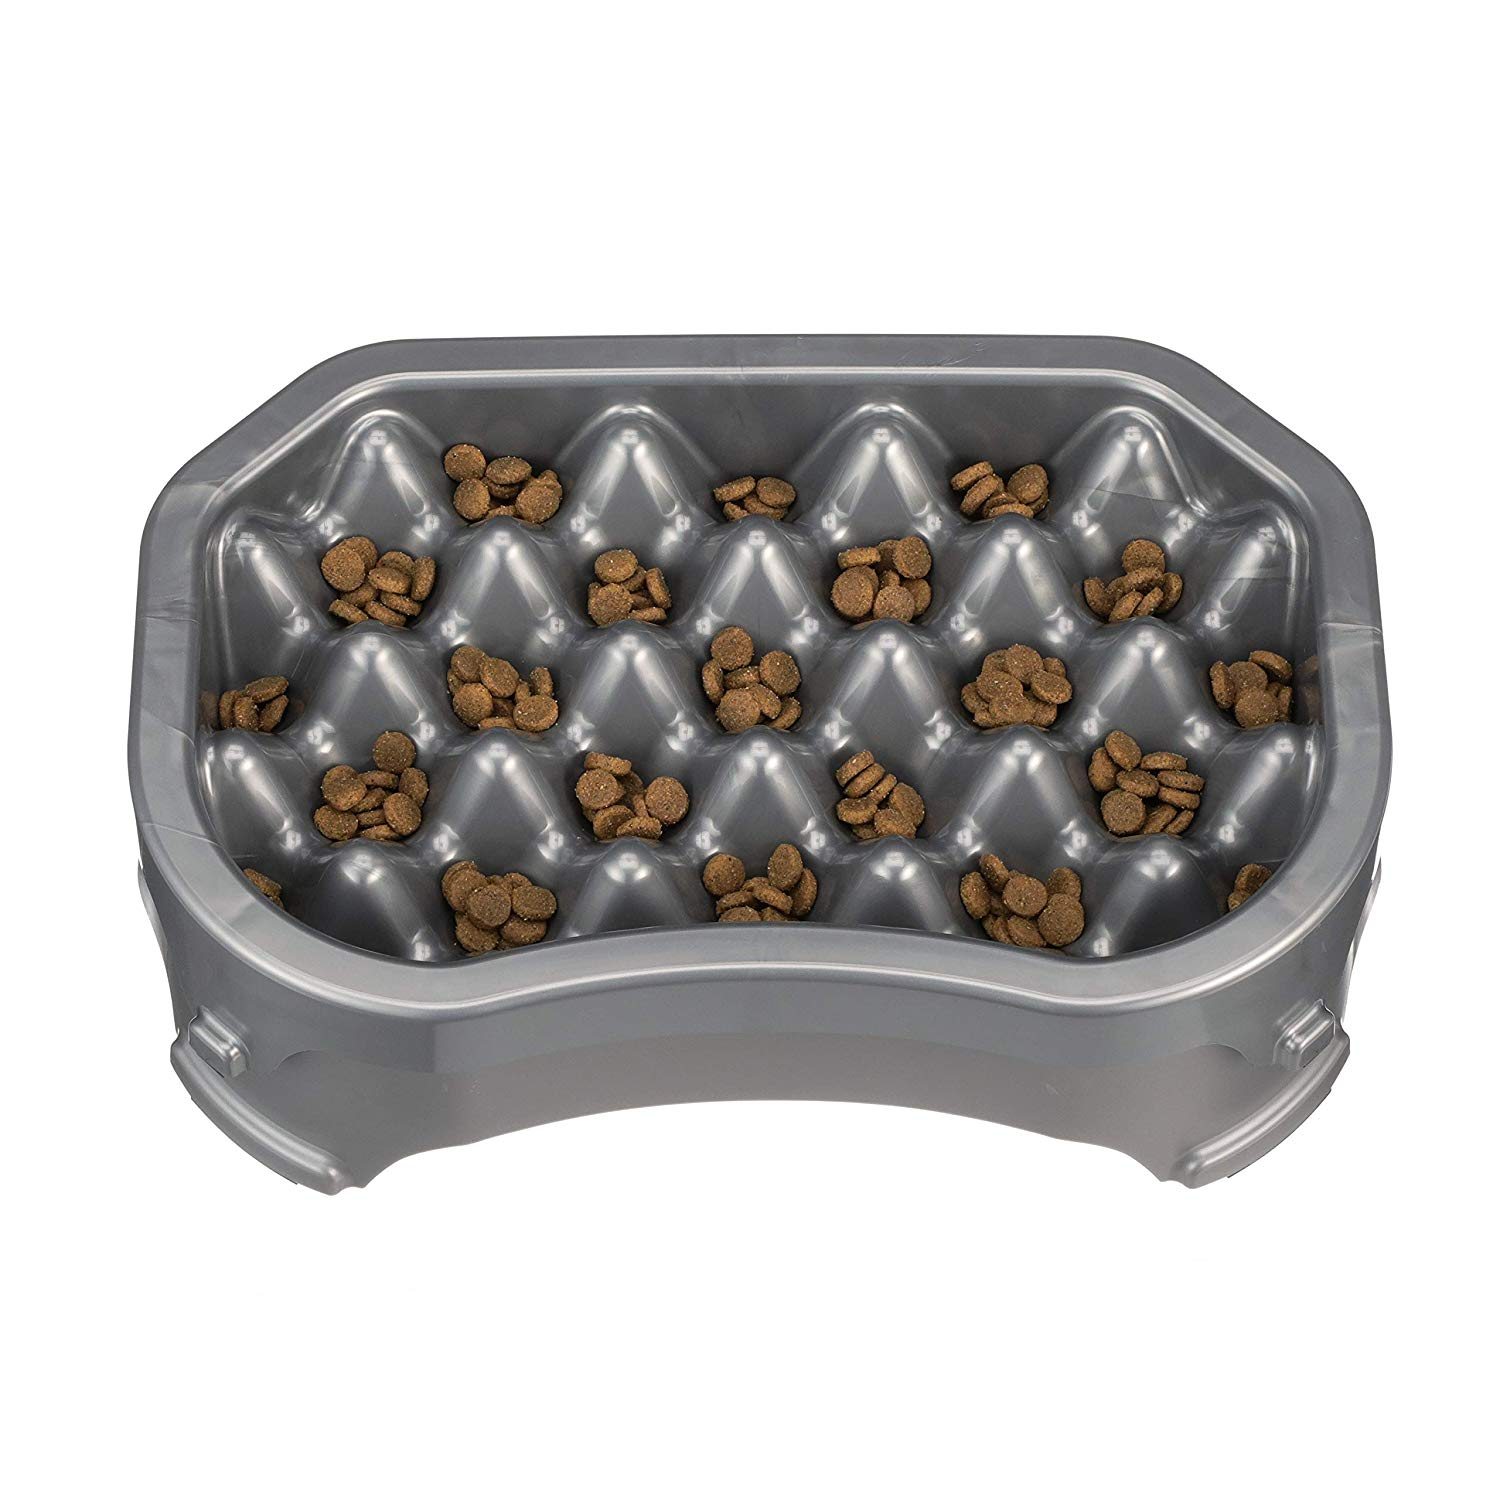 NEATER PET BRANDS Neater Slow Feeder & Accessories